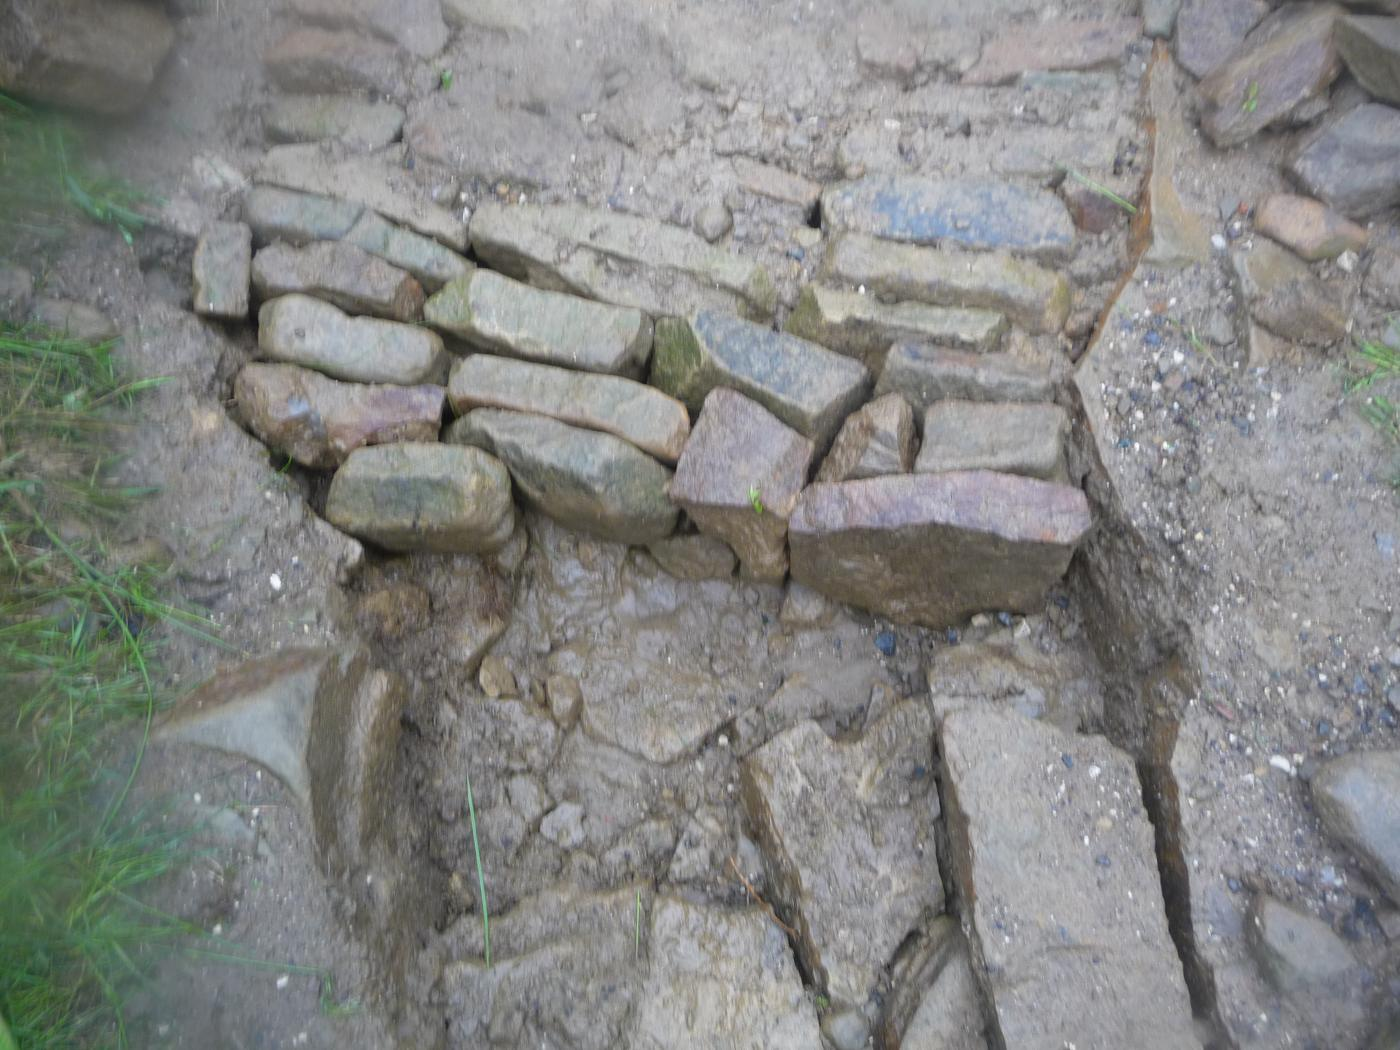 Stone pitching 2 - Hole is filled with stones with as few gaps as possible ('horizontal drystone walling')